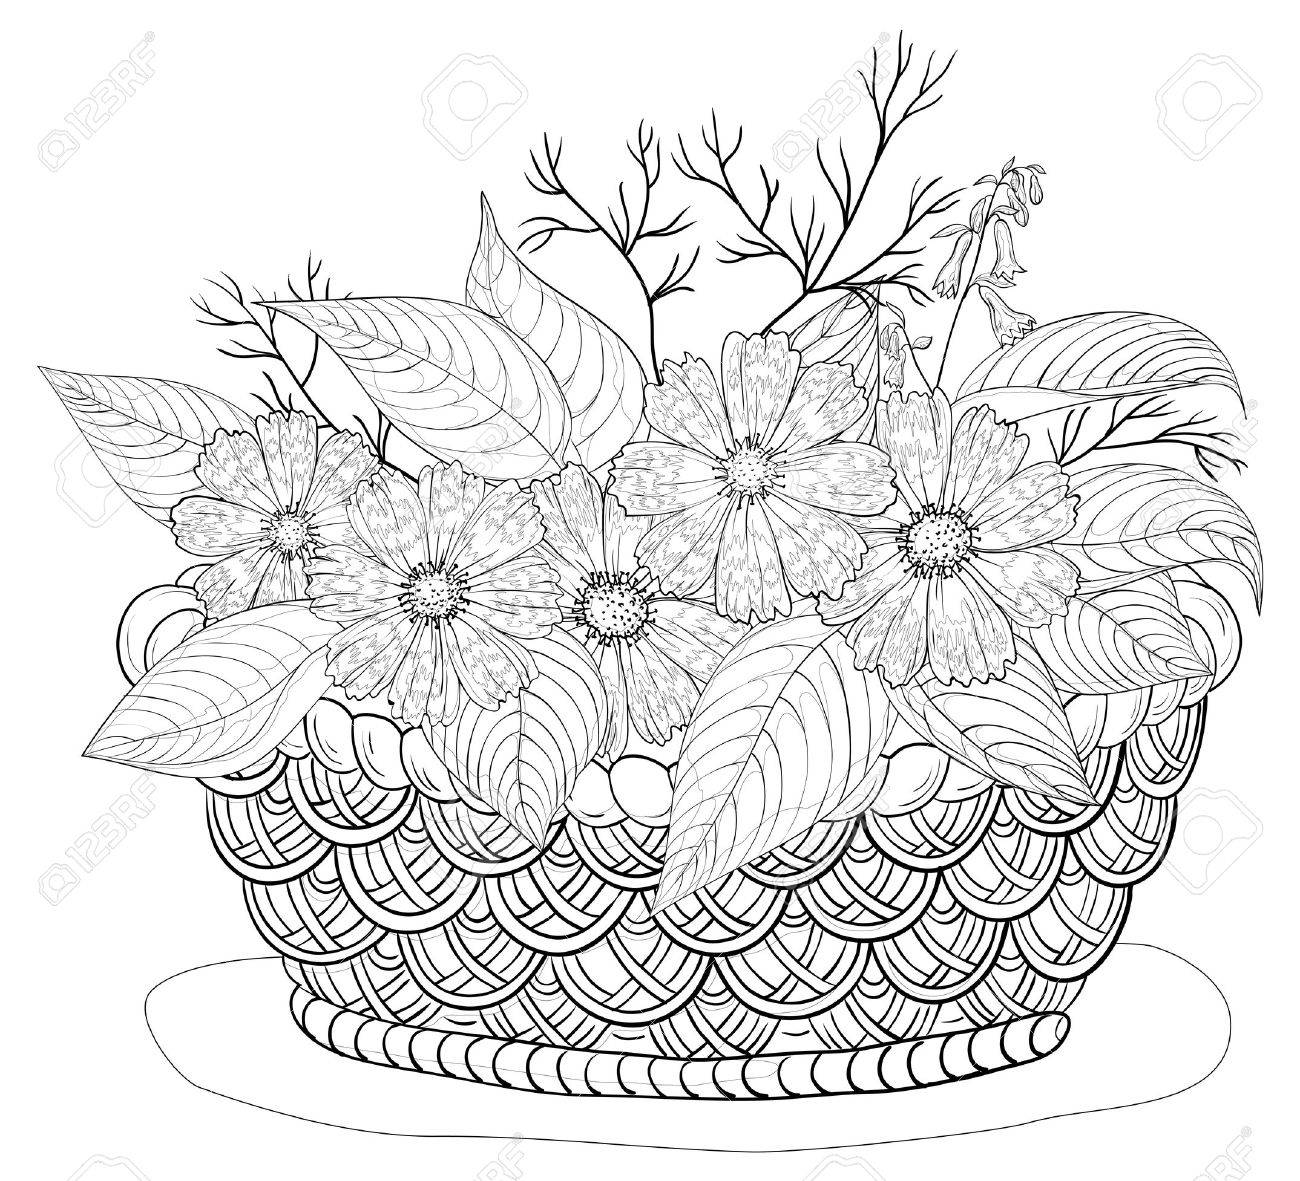 Wattled basket with flowers cosmos and leaves, black contours  Vector Stock Vector - 16701242